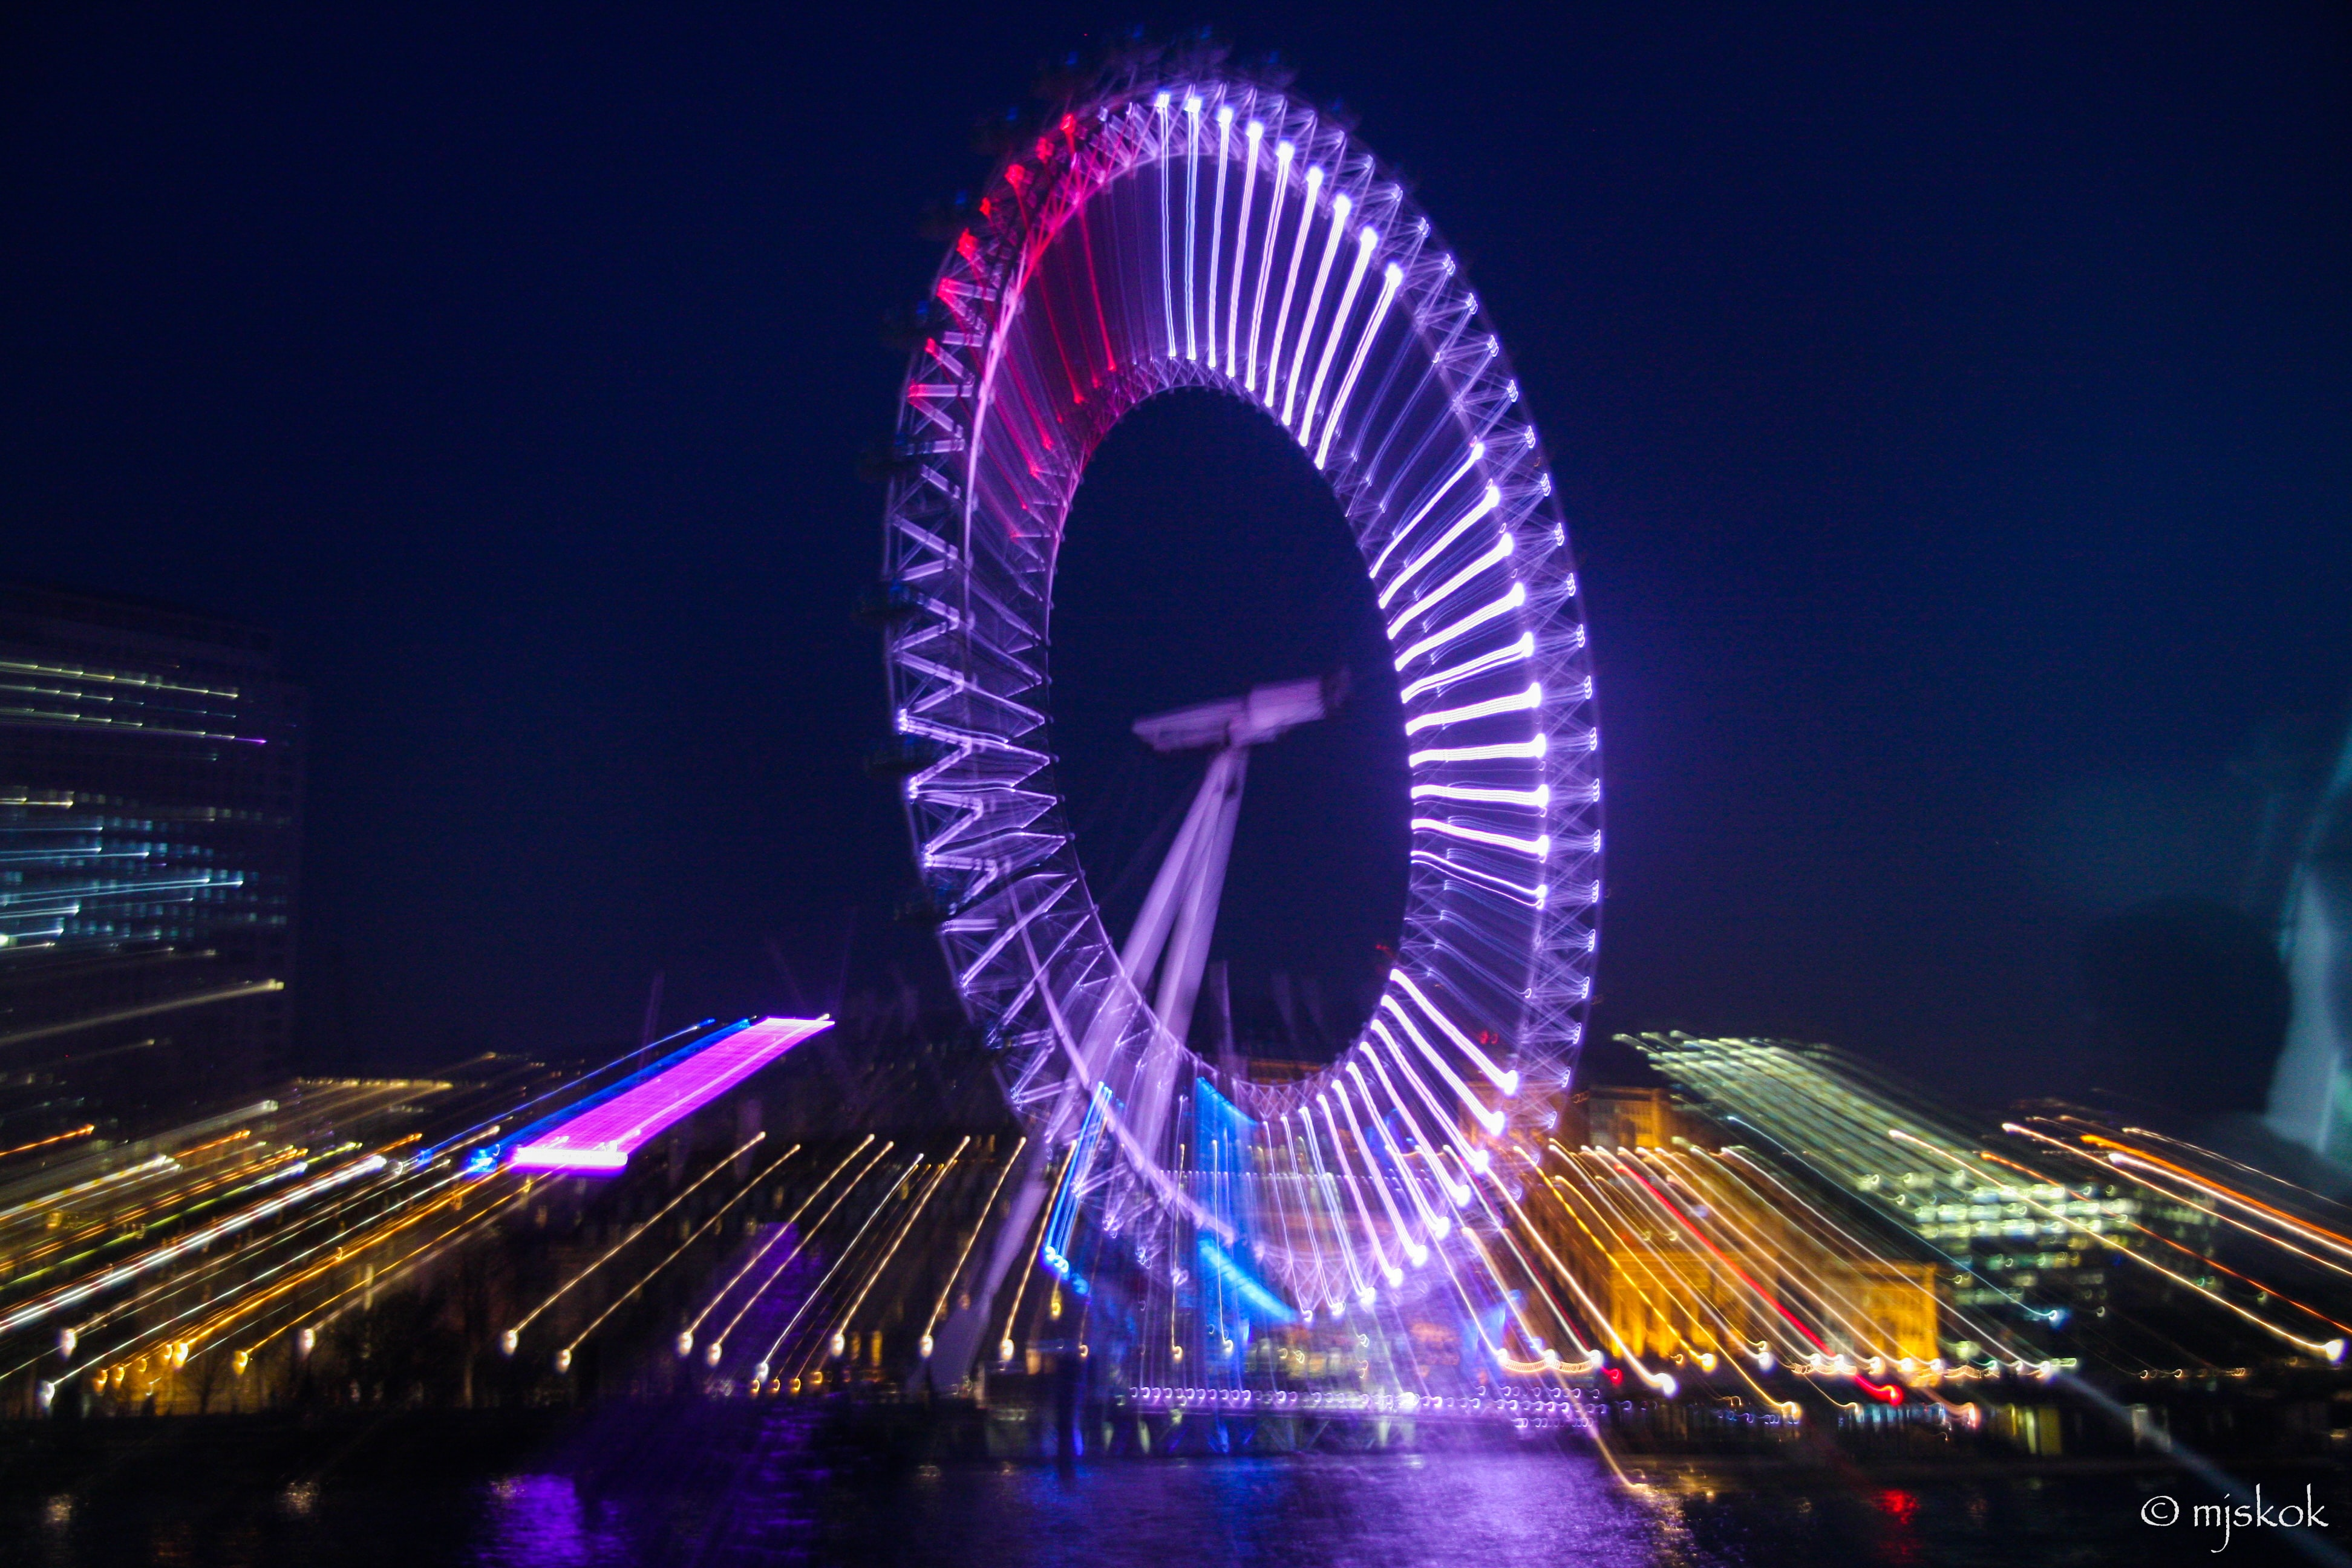 time-lapse photography Ferris wheel during night